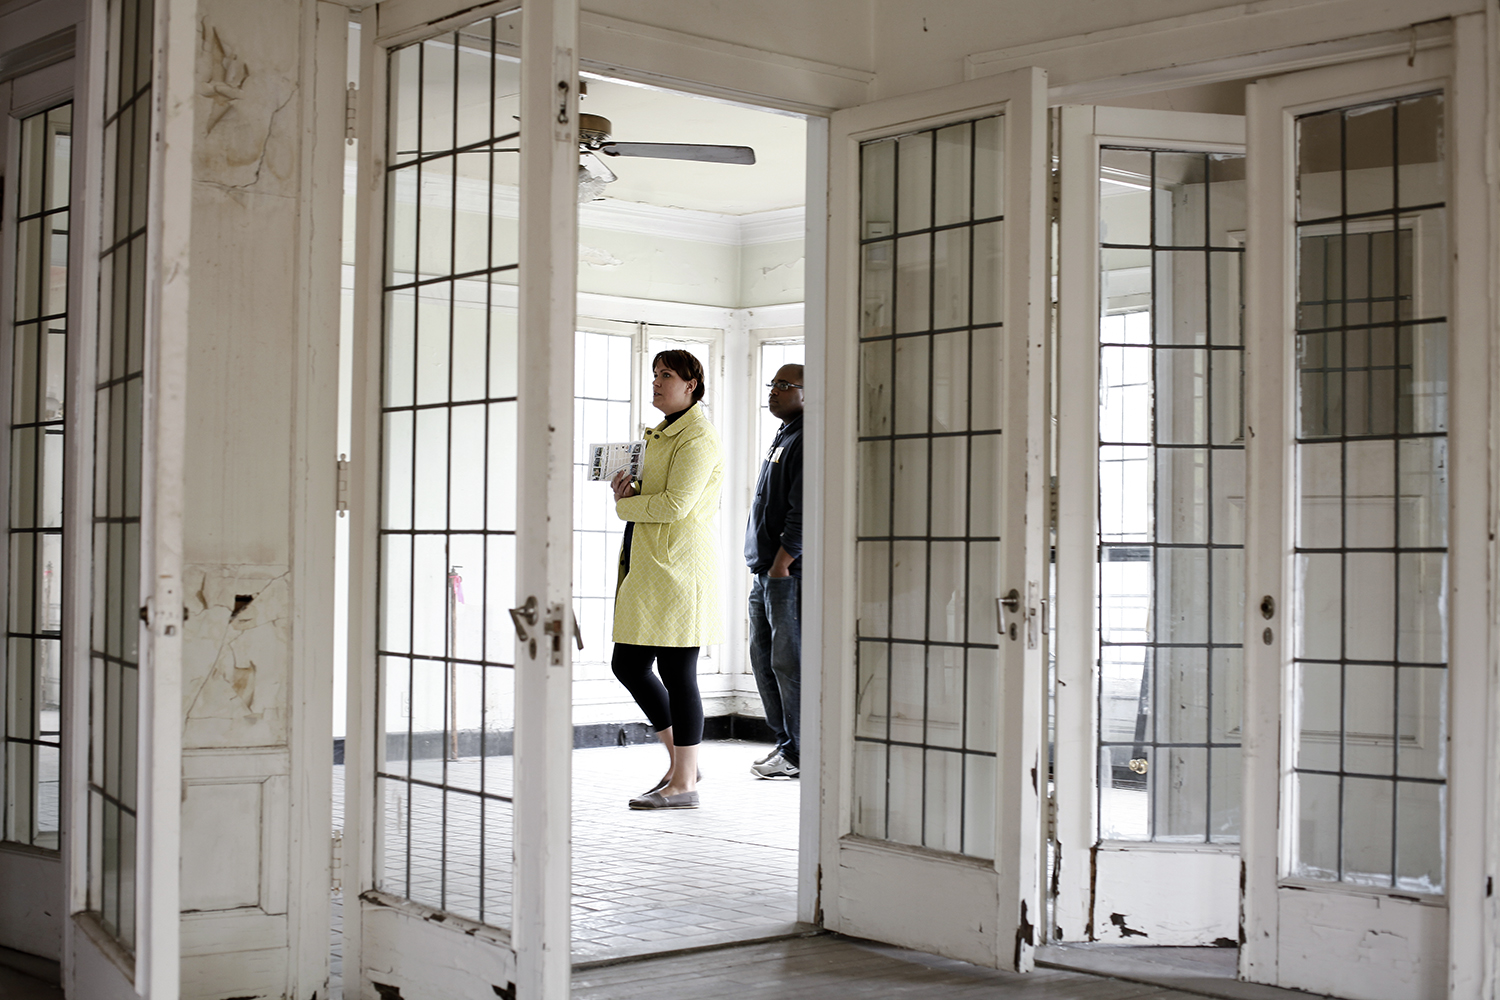 Jennifer Chiles, left, and Mike Jackson, both from Ann Arbor, walk into the main entryway at the house on 2081 Longfellow during the Boston Edison Auction Tour on Sat., May 17, 2014 in Detroit. Tim Galloway/Special to DFP